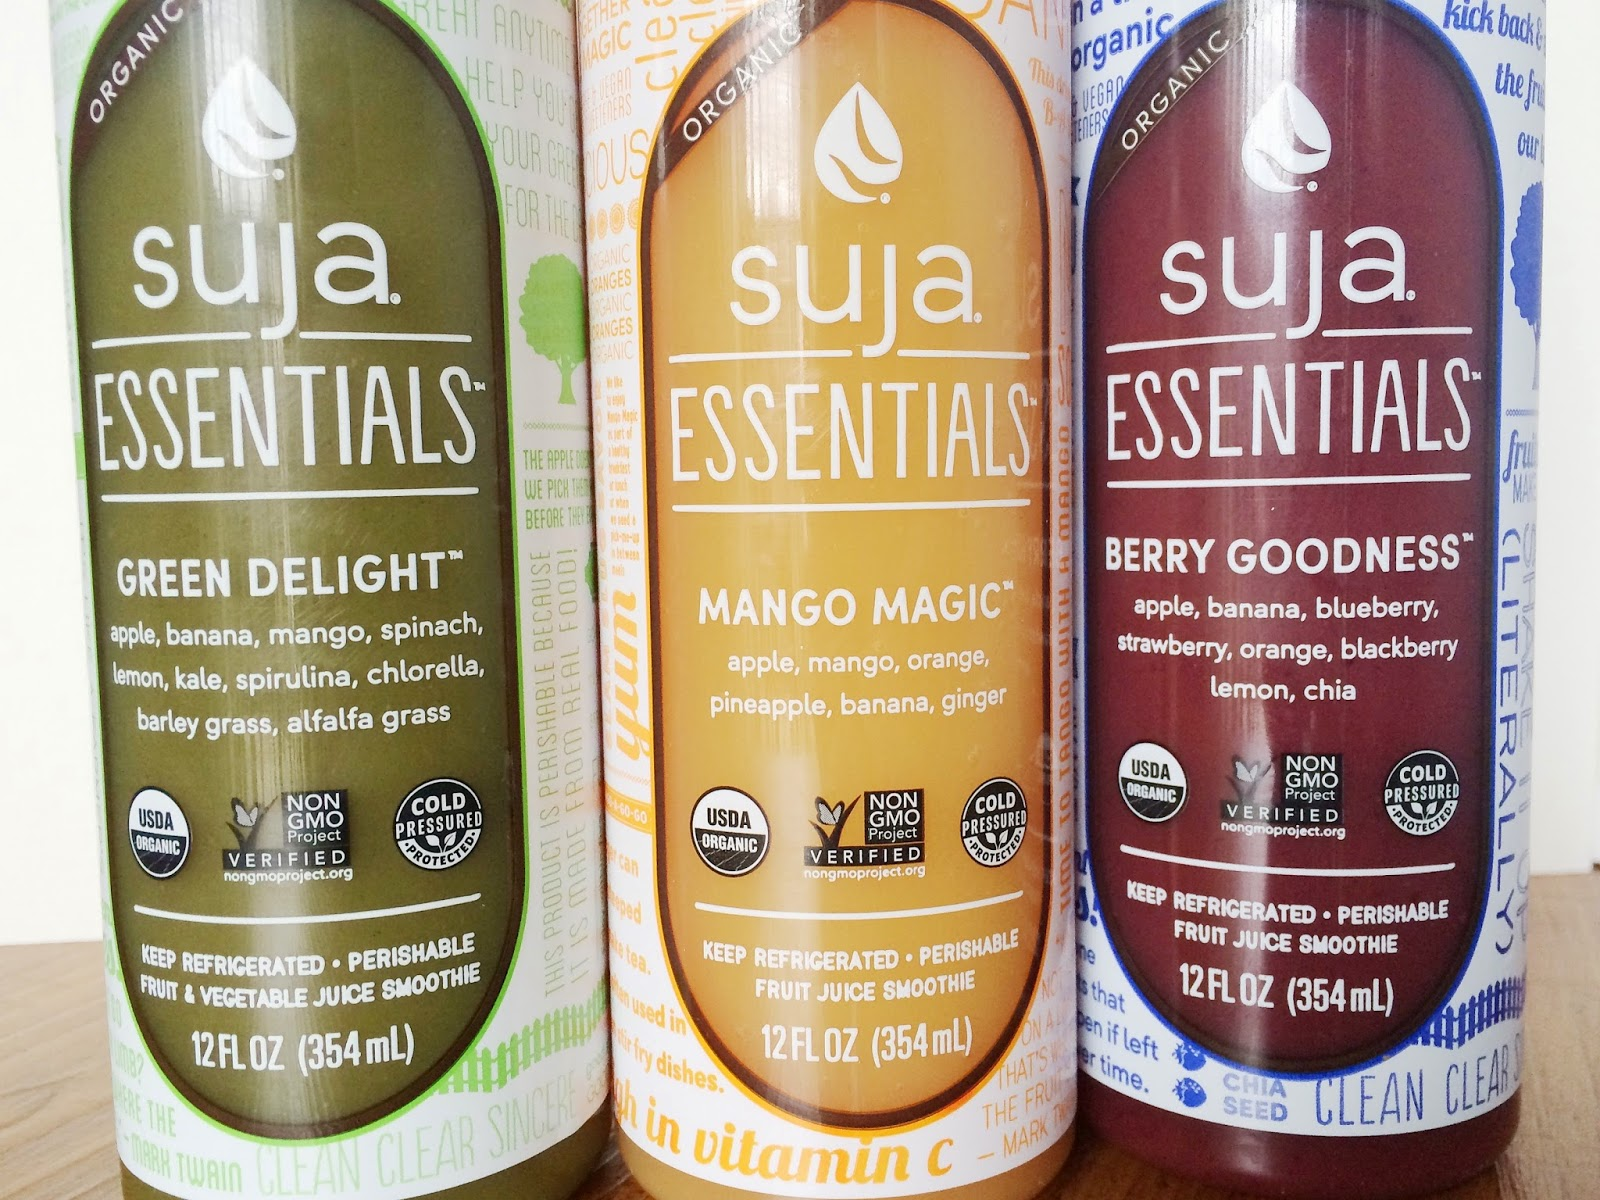 cold pressed, juices, suja, fruits